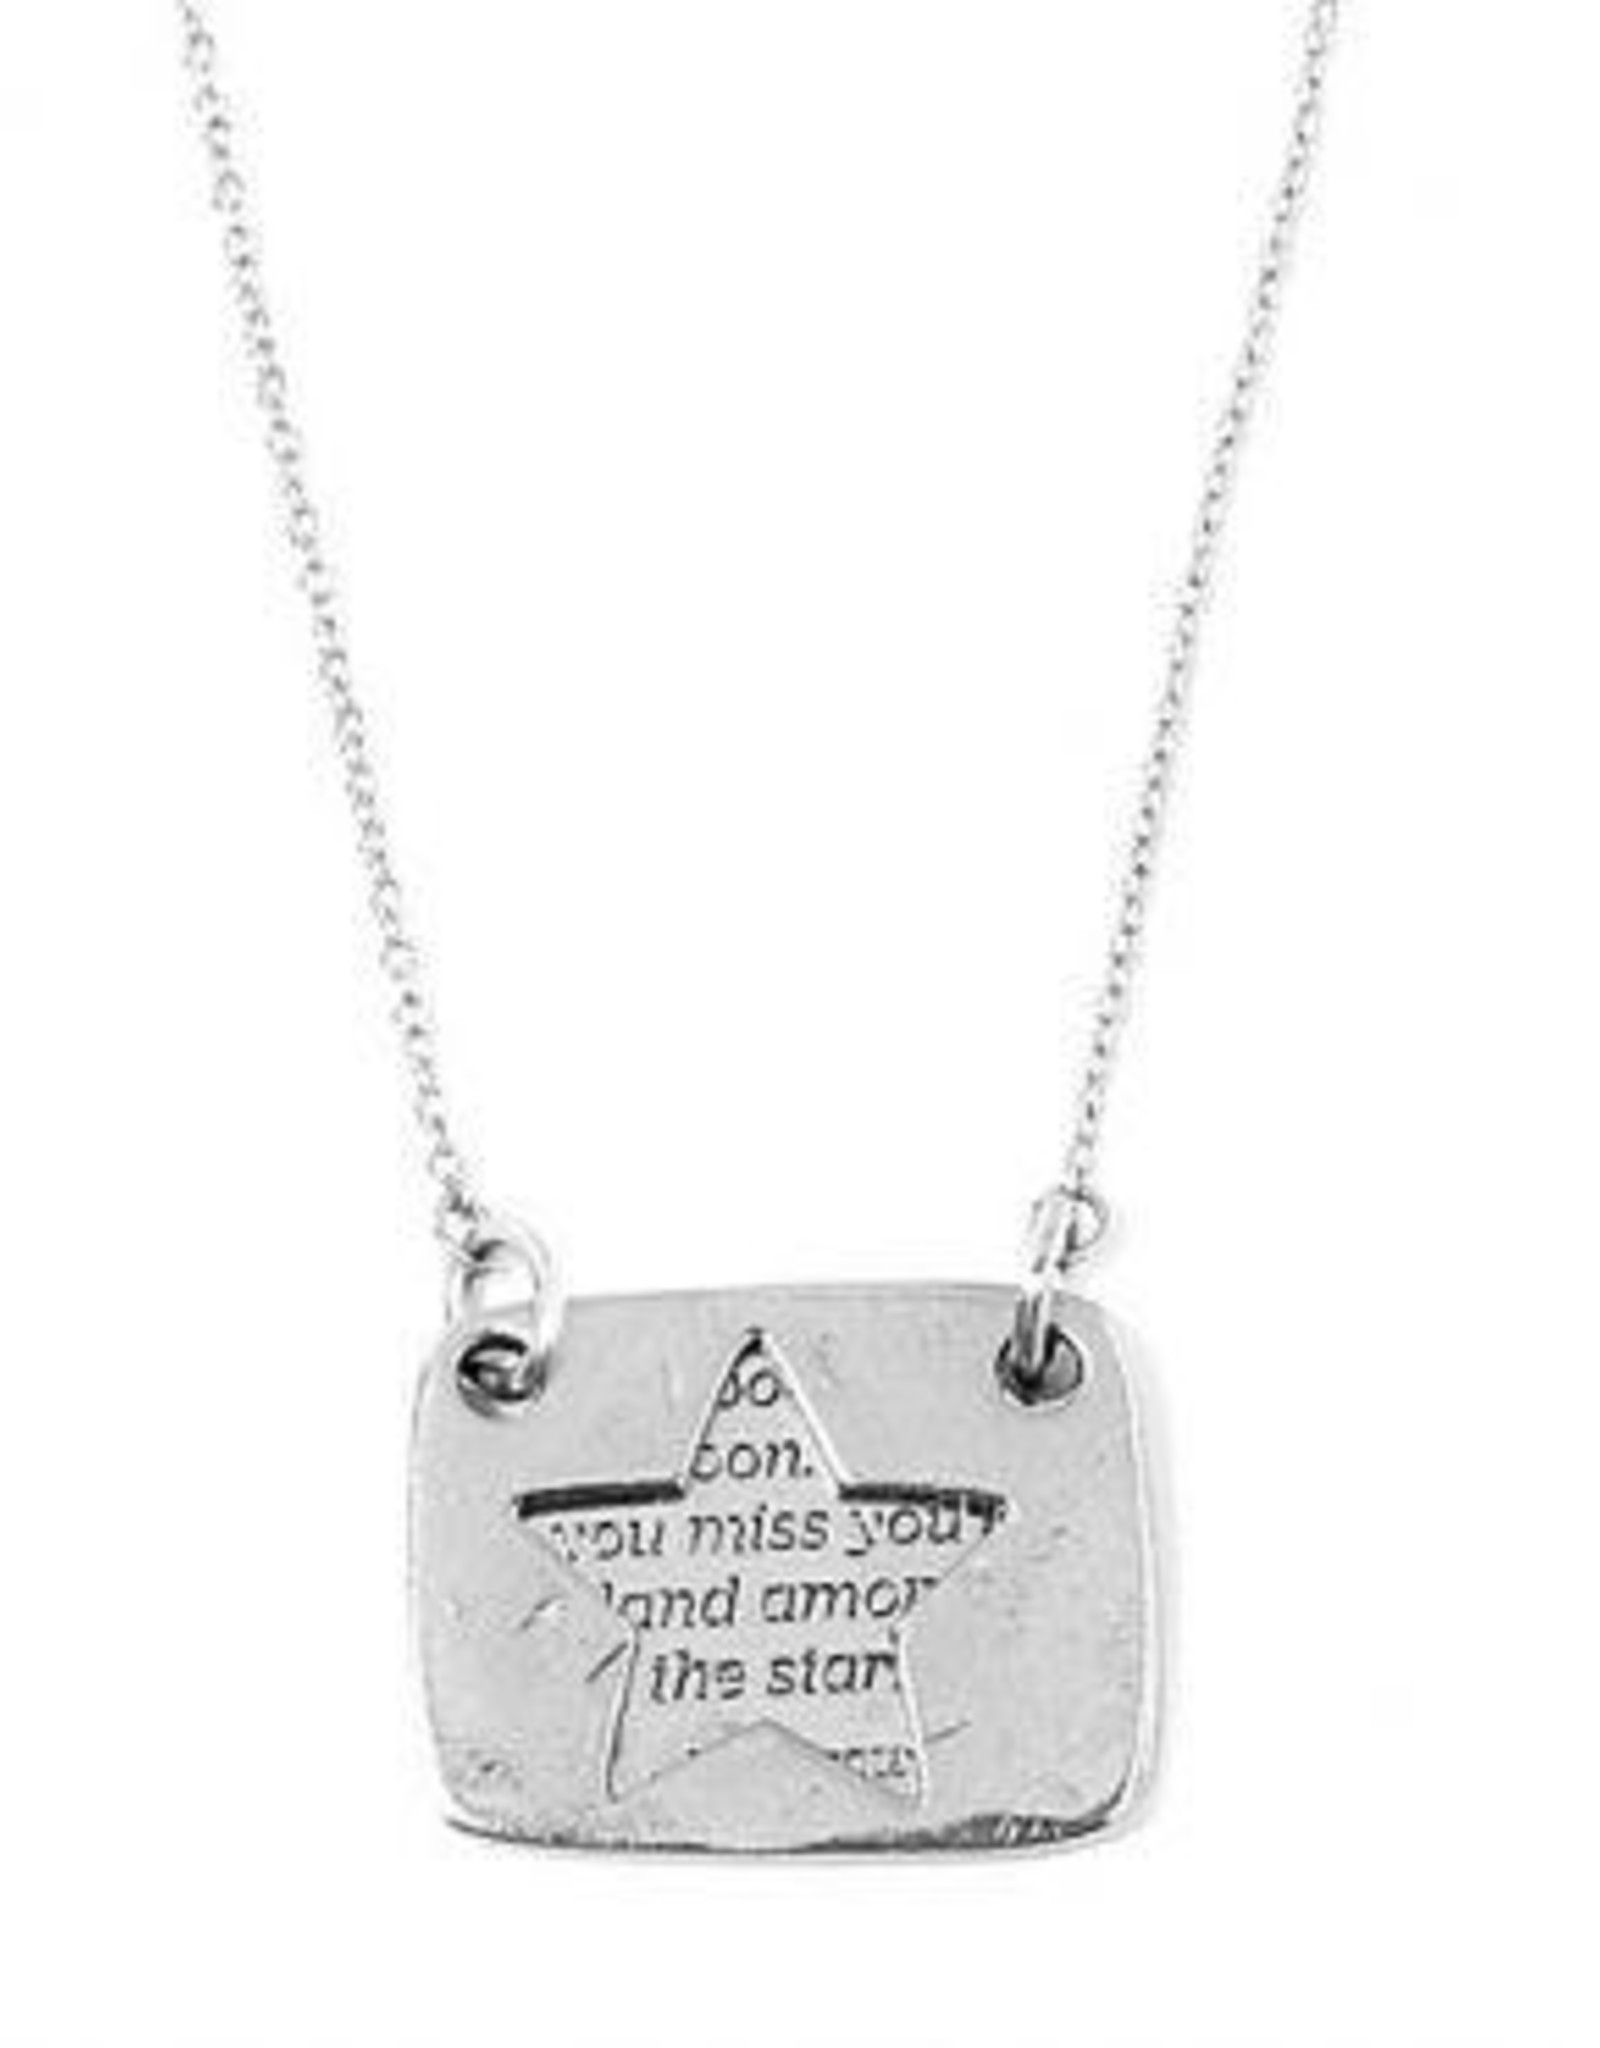 Love Notes Necklace - Star